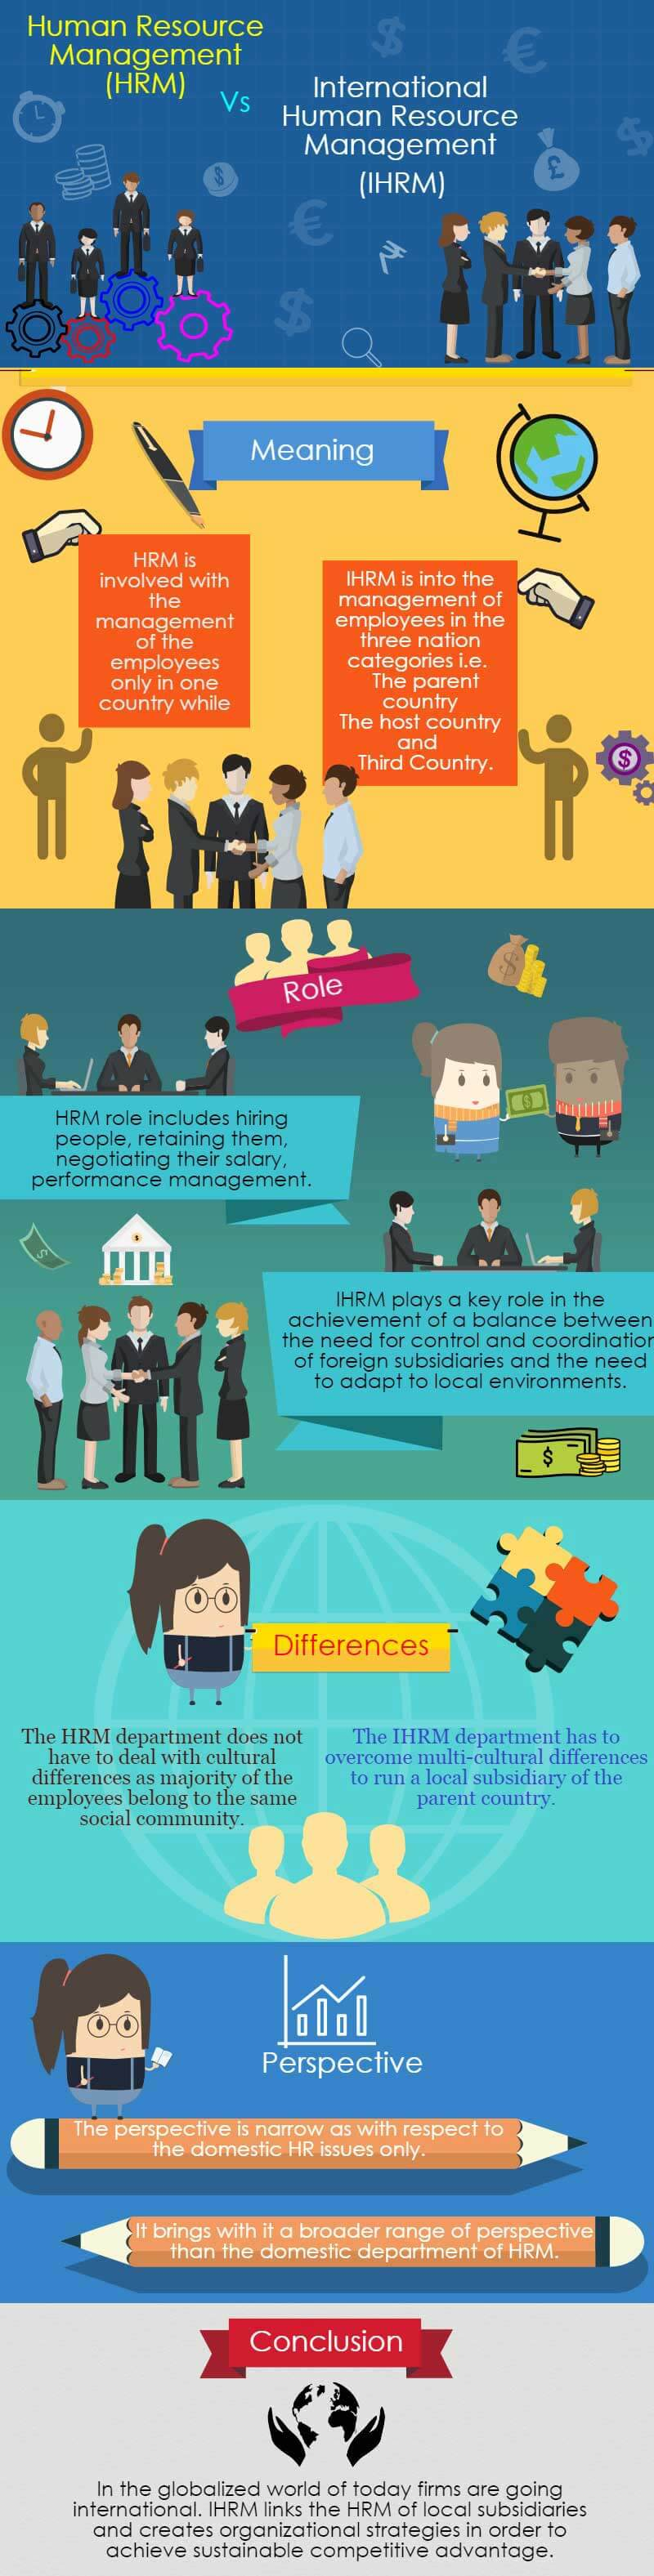 Domestic HRM vs International HRM | eduCBA